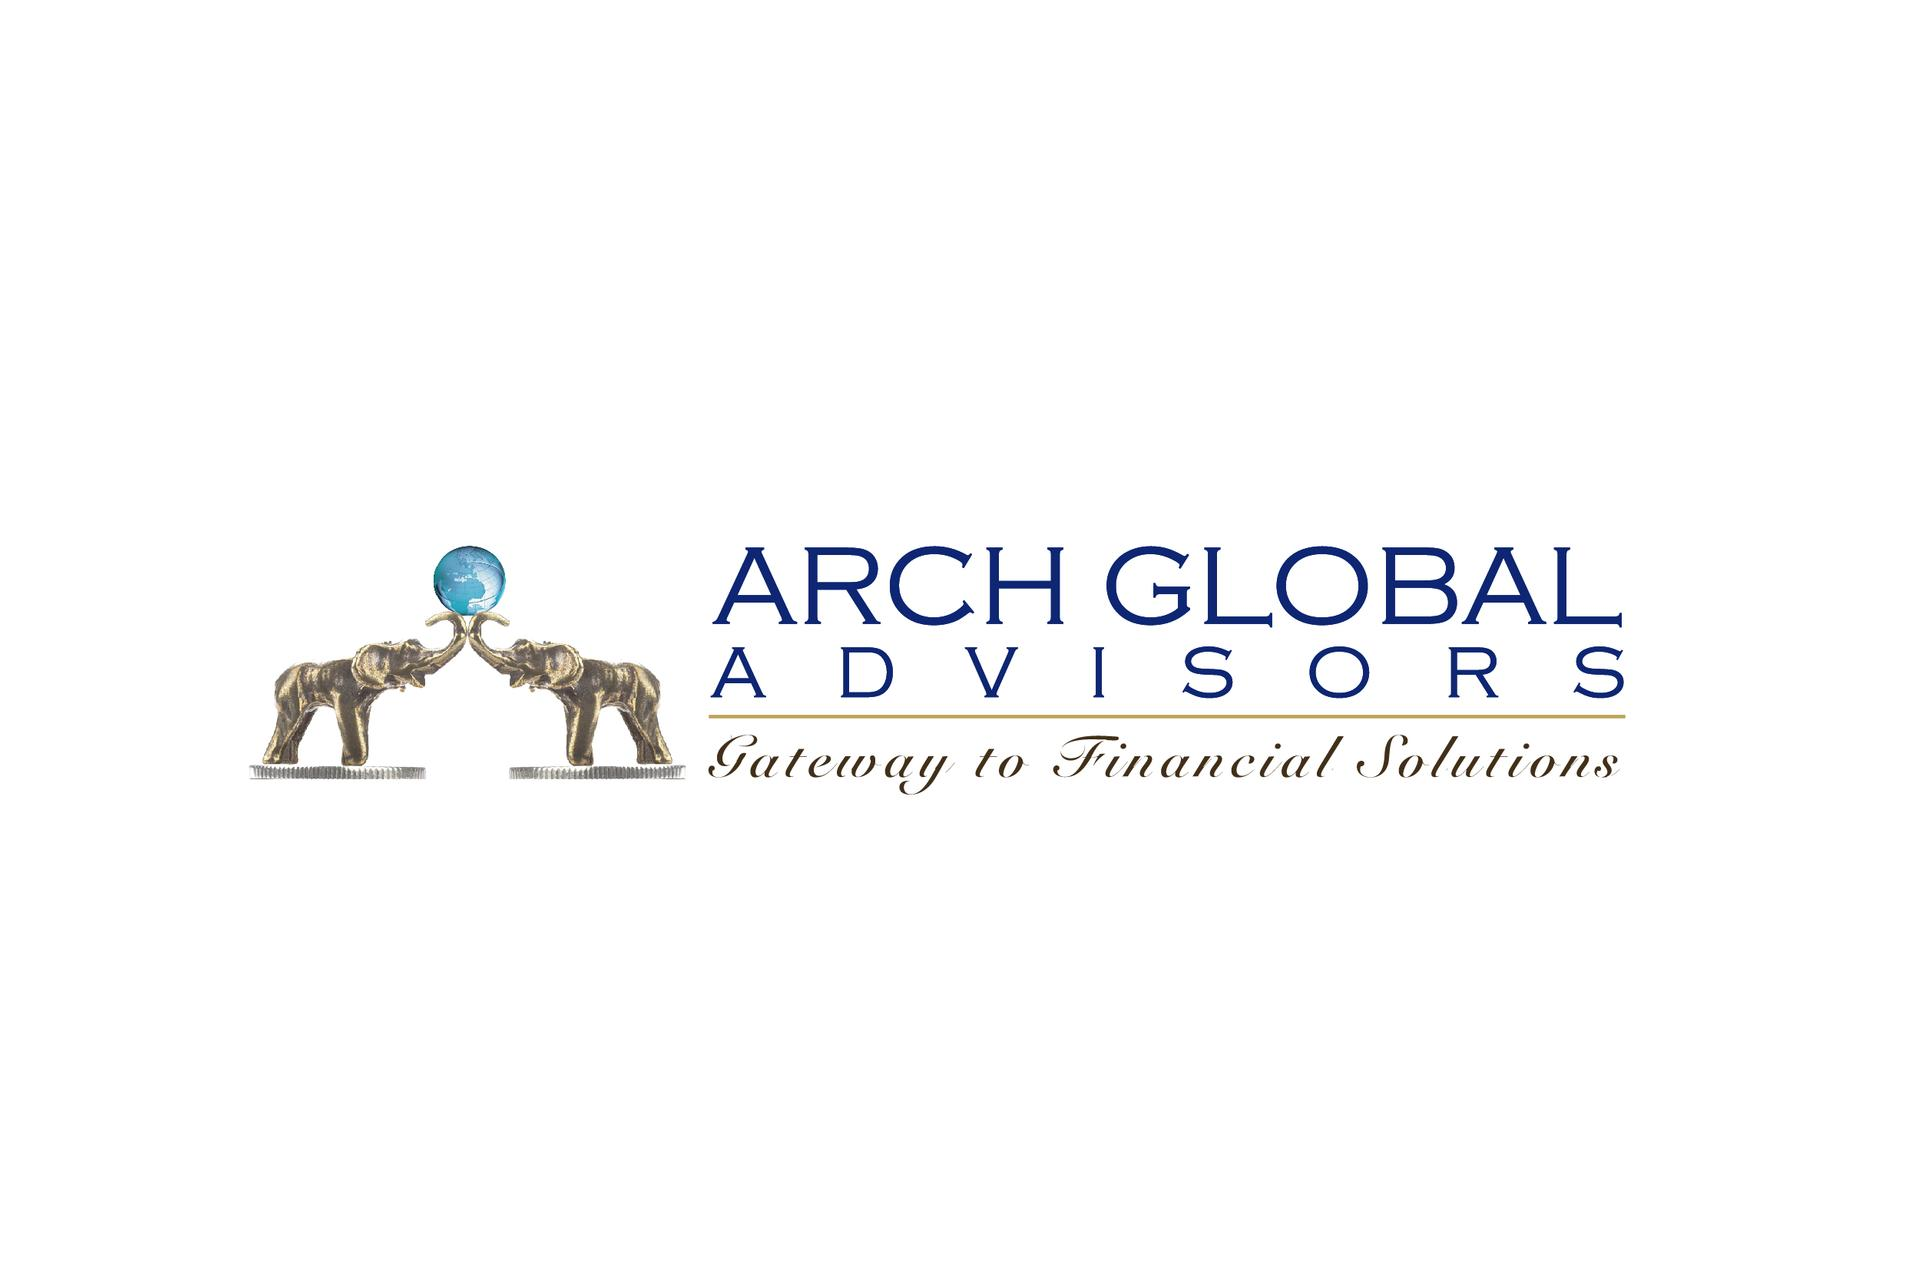 Arch Global Advisors